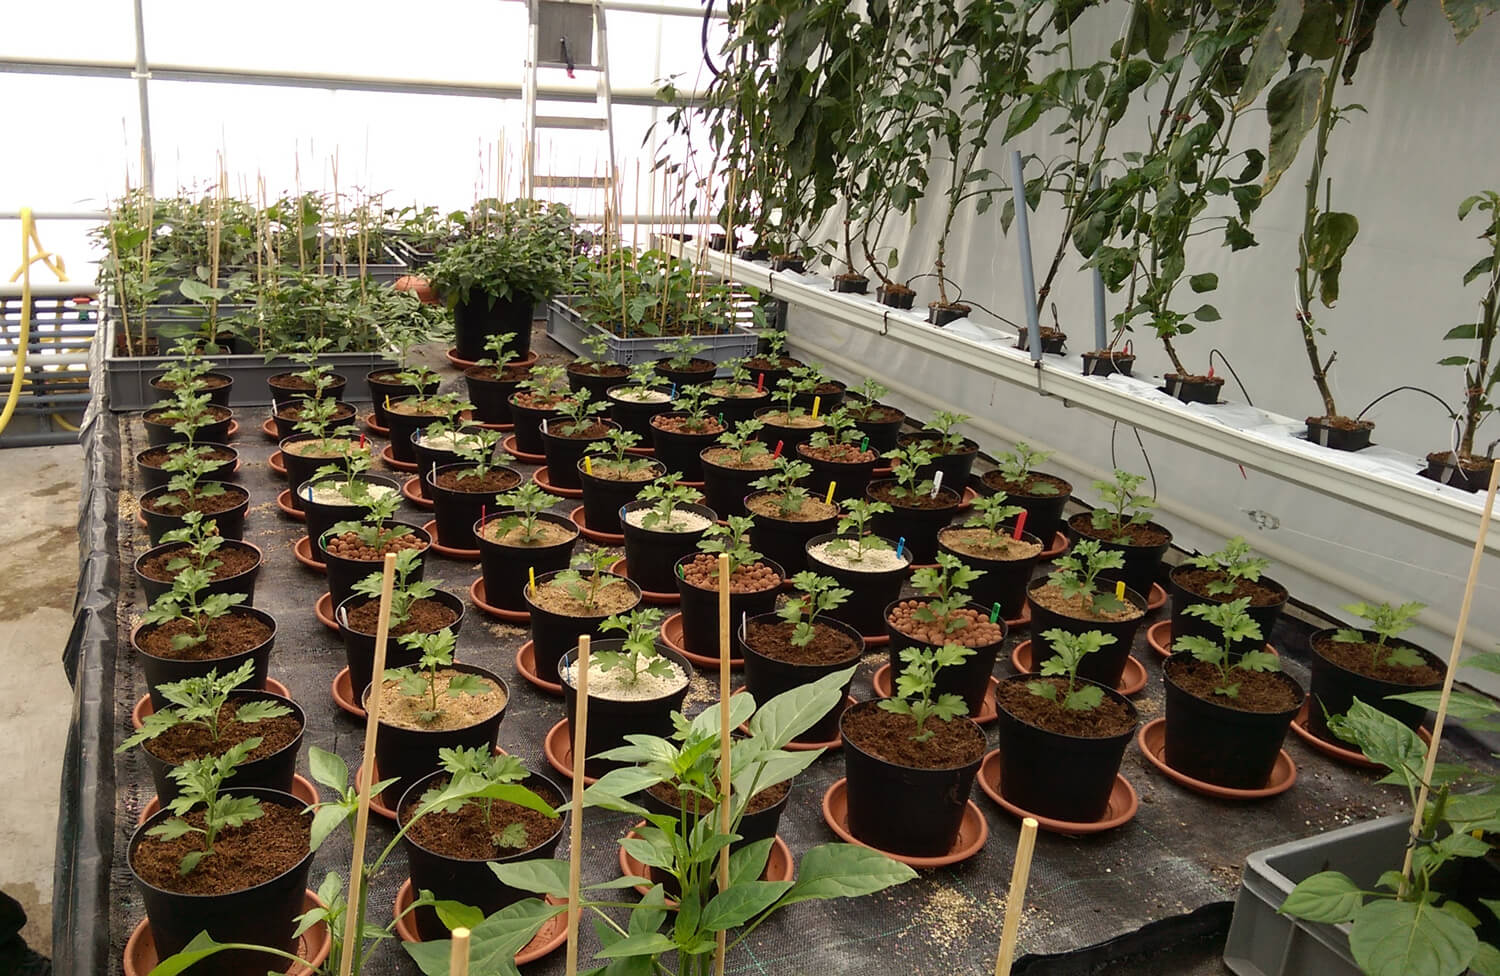 Field trial of using different growing mediums in the same set-up at Canna Research